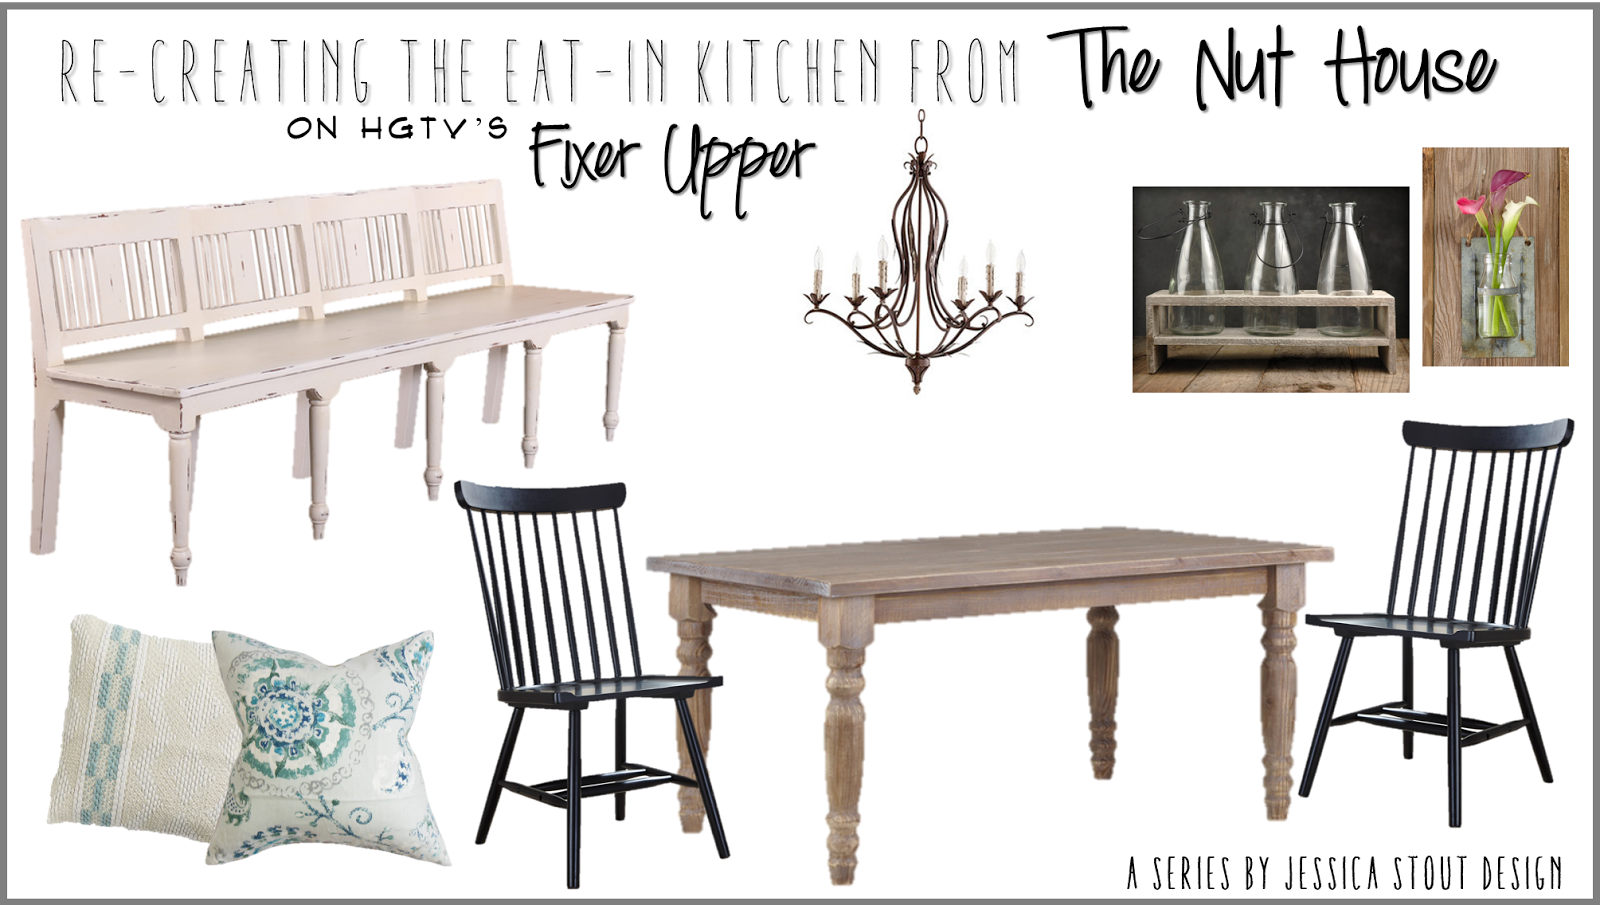 Fixer upper eat in kitchen - I Loved This Eat In Kitchen Area Just On The Other Side Of The Island Here Are Some Tips And Ideas To Create The Same Look In Your Home